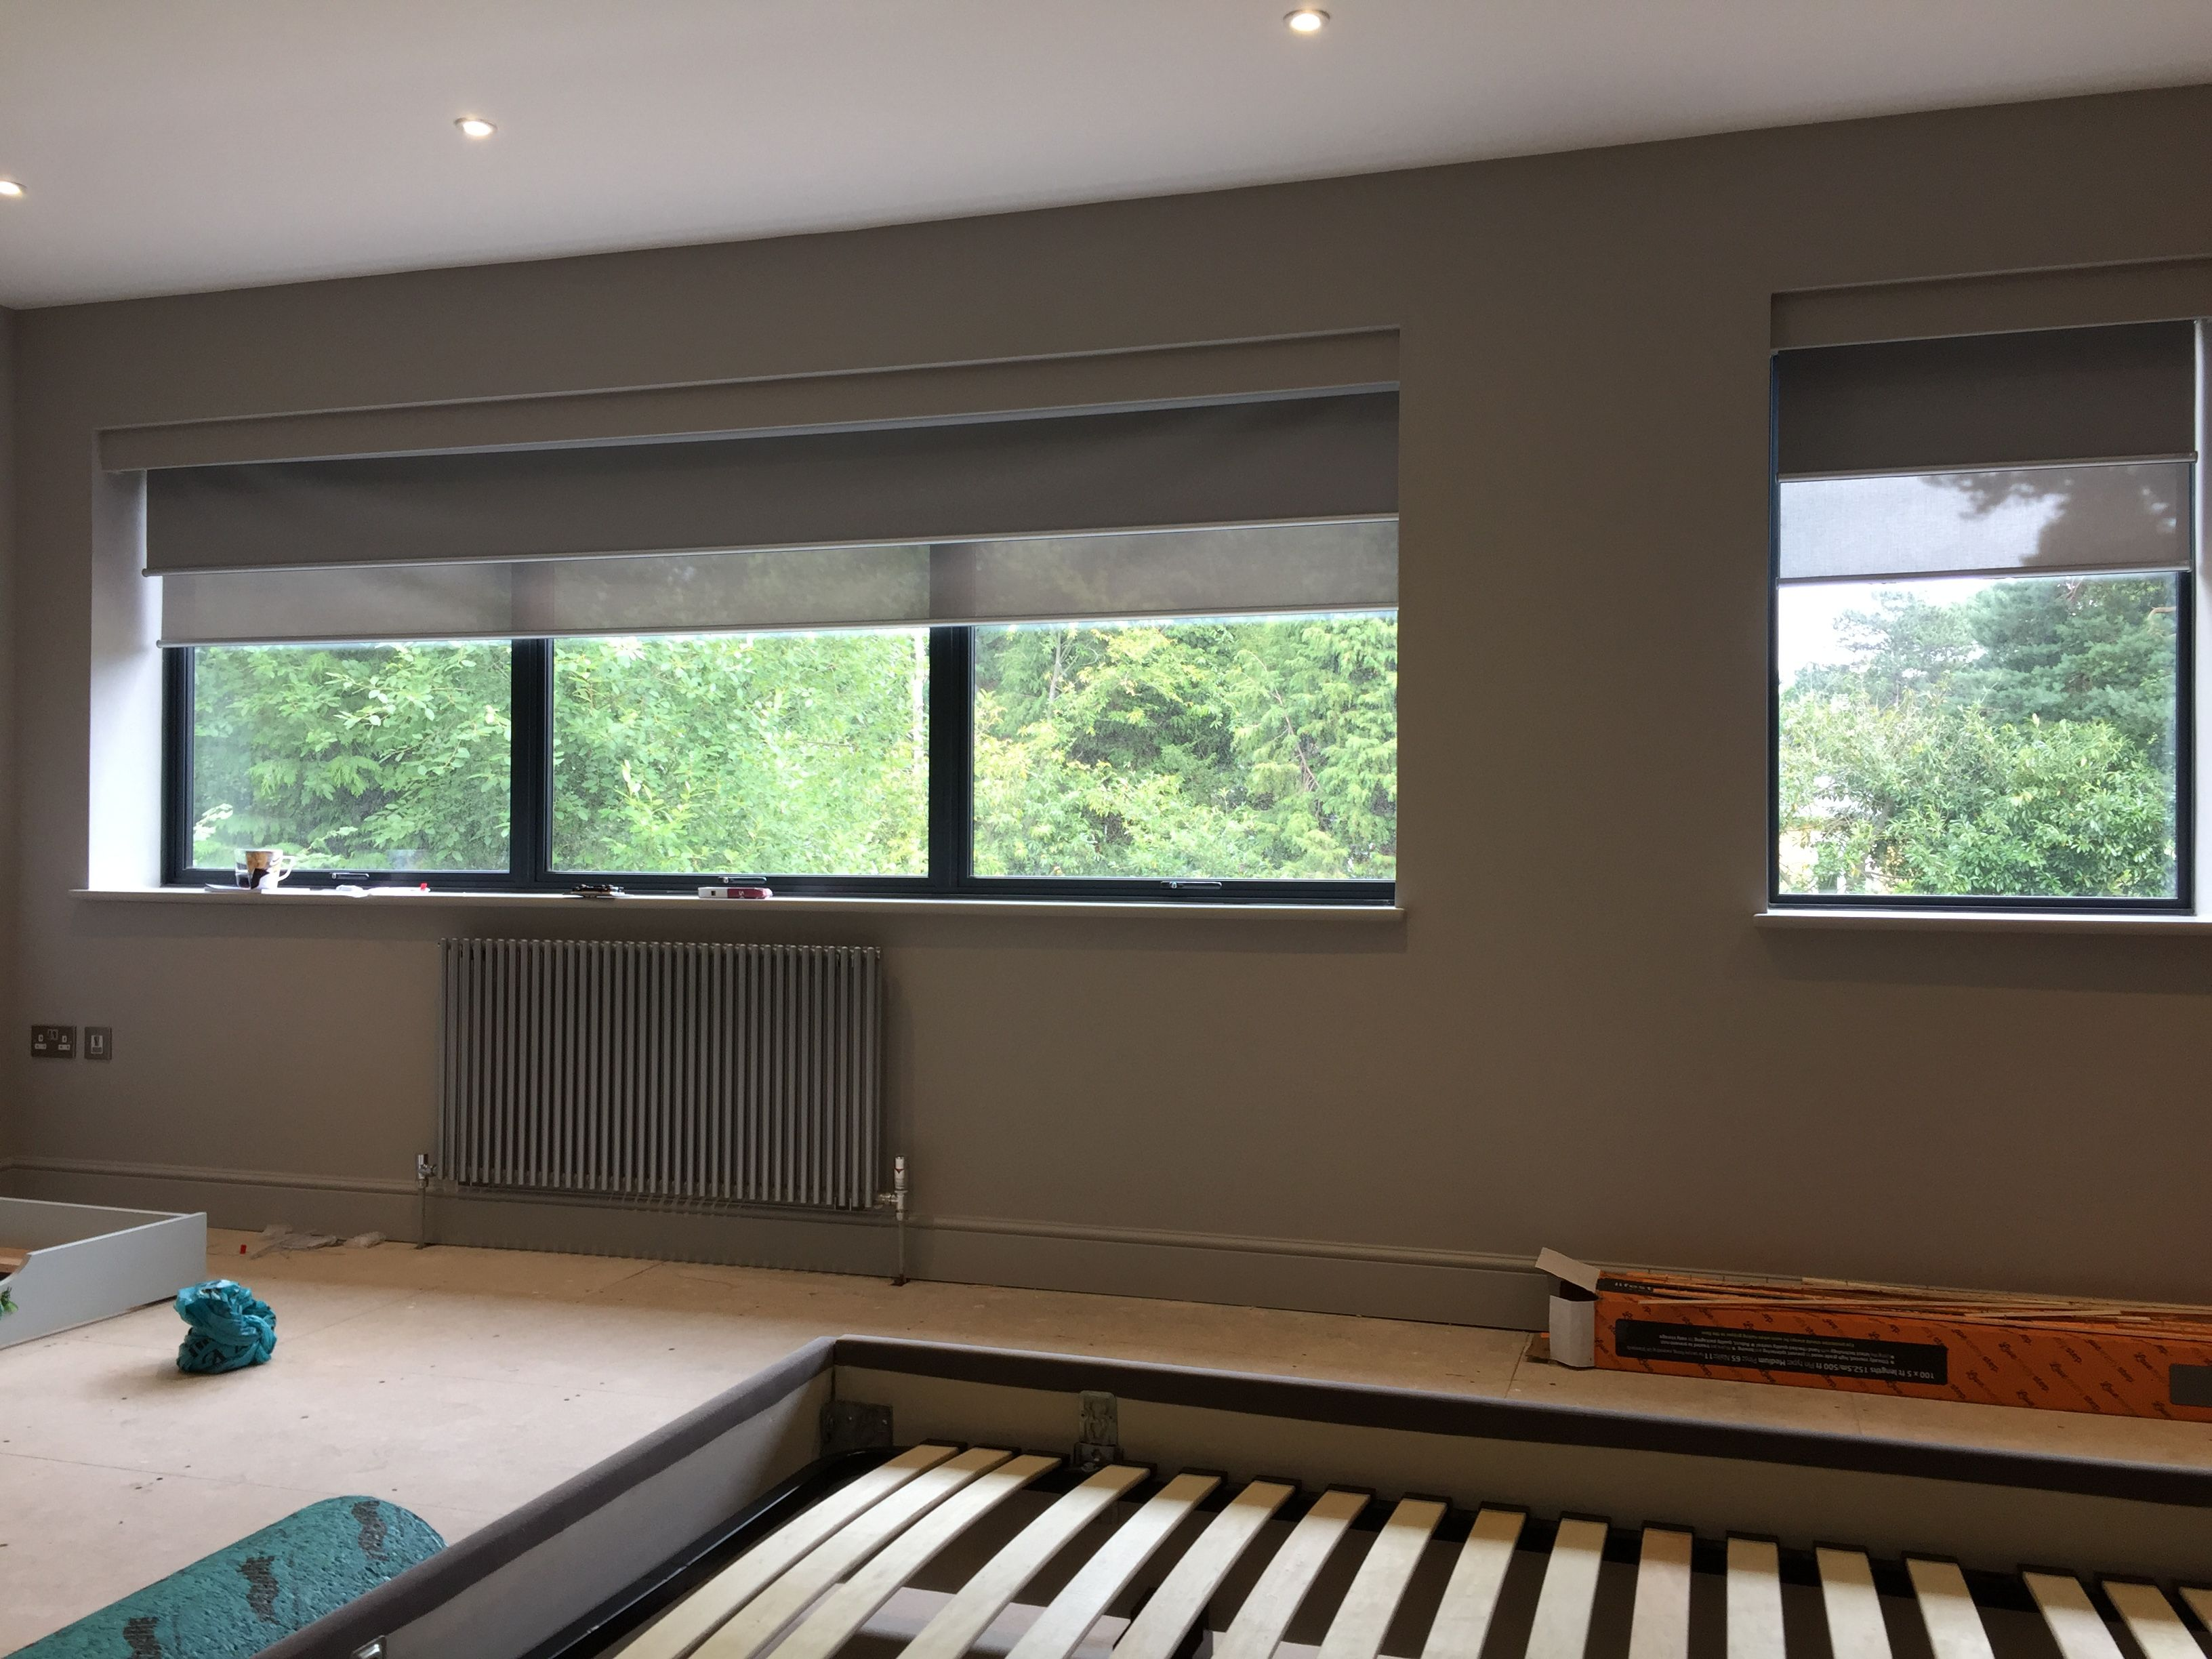 dalston modern window pelmet blind bedroom the fitted recess blinds roller outside matching blackout with pin